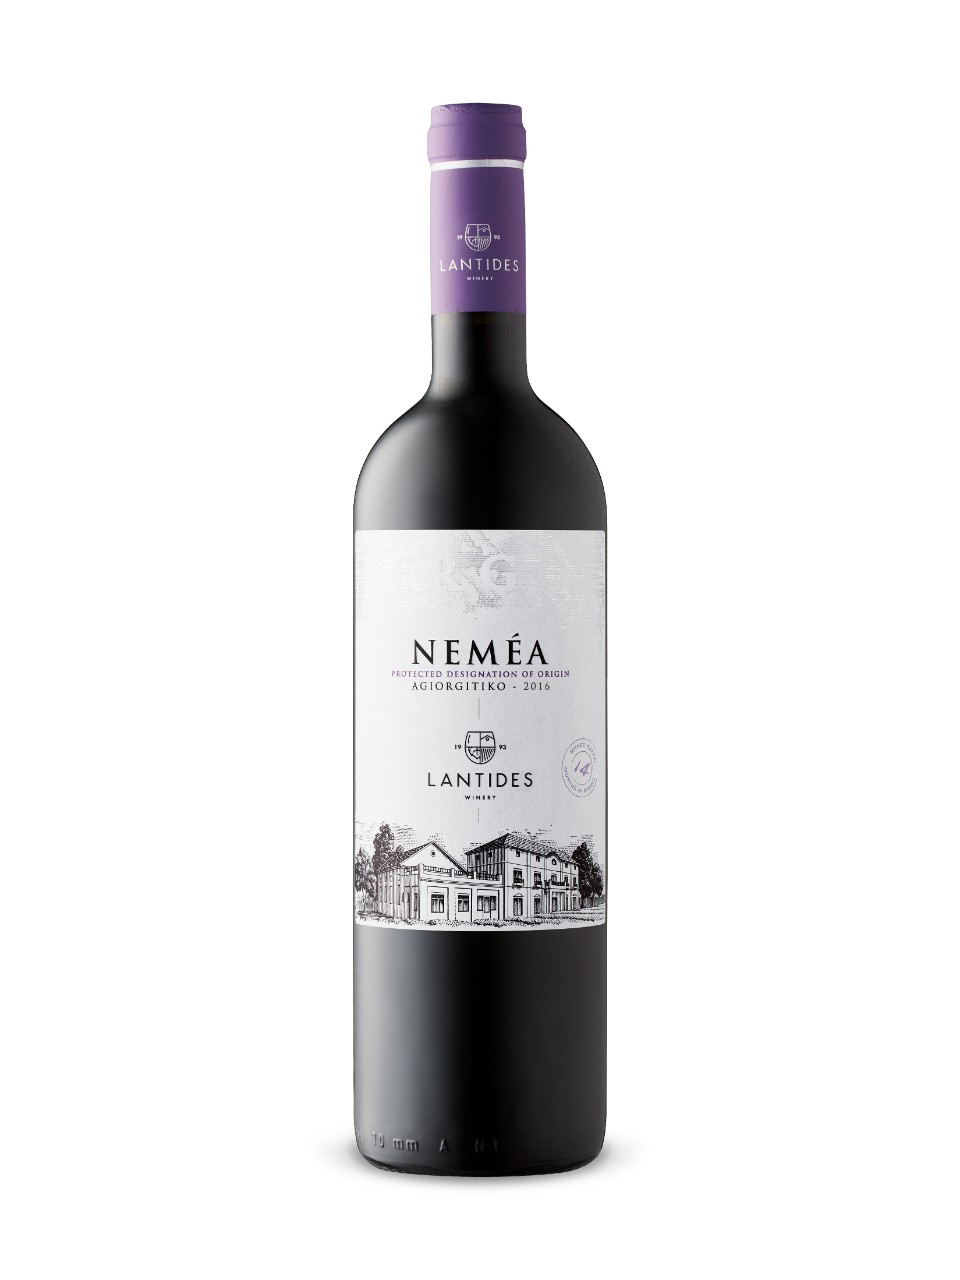 Image for Lantides Neméa Agiorgitiko 2016 from LCBO